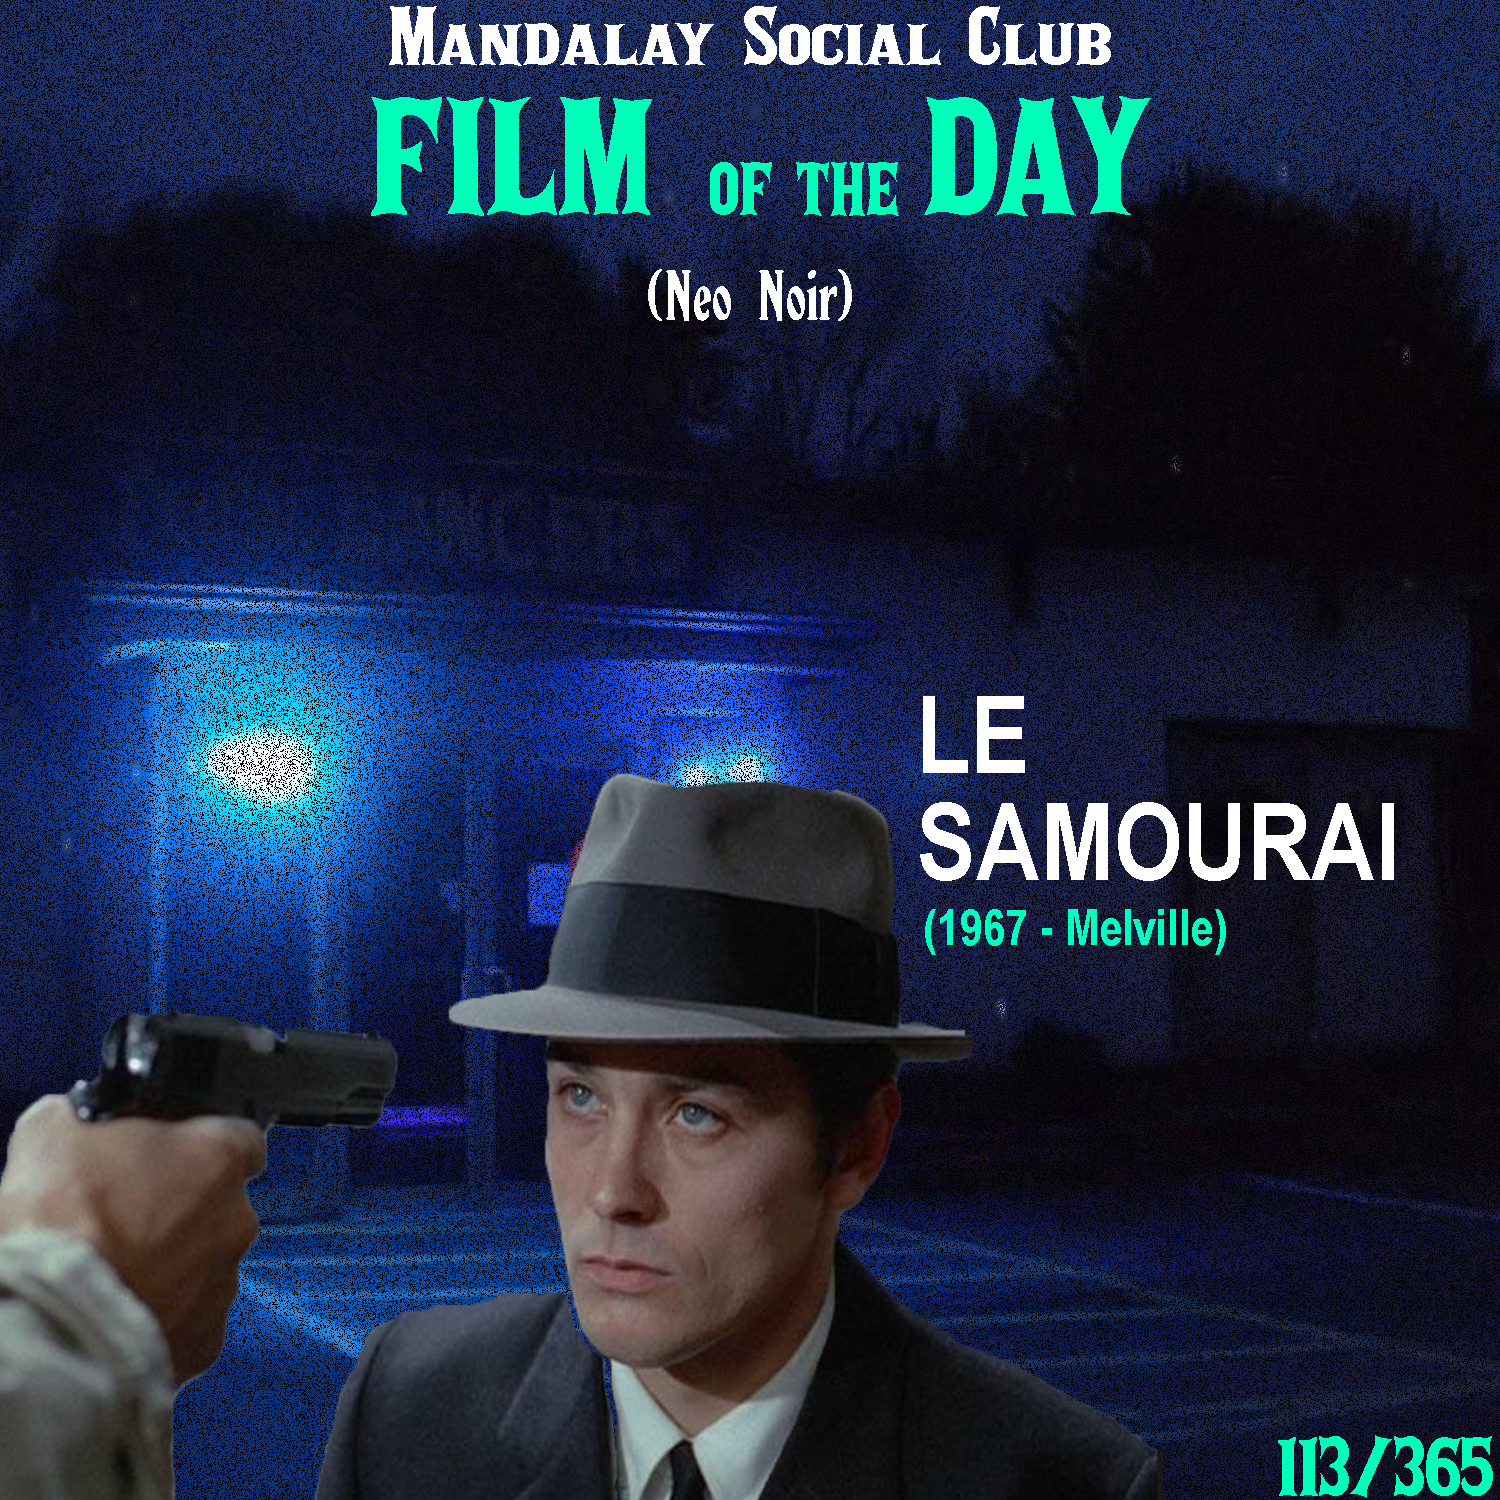 LE SAMOURAÏ     (dir. Jean-Pierre Melville)    Le Samouraï  is Melville's ode to American crime cinema from the 40s and 50s with a flare of modern French pop culture.   Le Samouraï  stars Alain Delon as a hired assassin with a samurai-like mythos sent to take out the owner of a nightclub. When he gets questioned and taken in by the police, the men who hired him now set him up to ensure that he doesn't squeal.  Melville took all the striking and moody aspects of the American film noir and incorporated it into a modern setting in 60's France.  Le Samouraï  is one of the best examples at how dynamic film noir traits are and how far their influence reached!    5/5     WATCH: The Criterion Channel